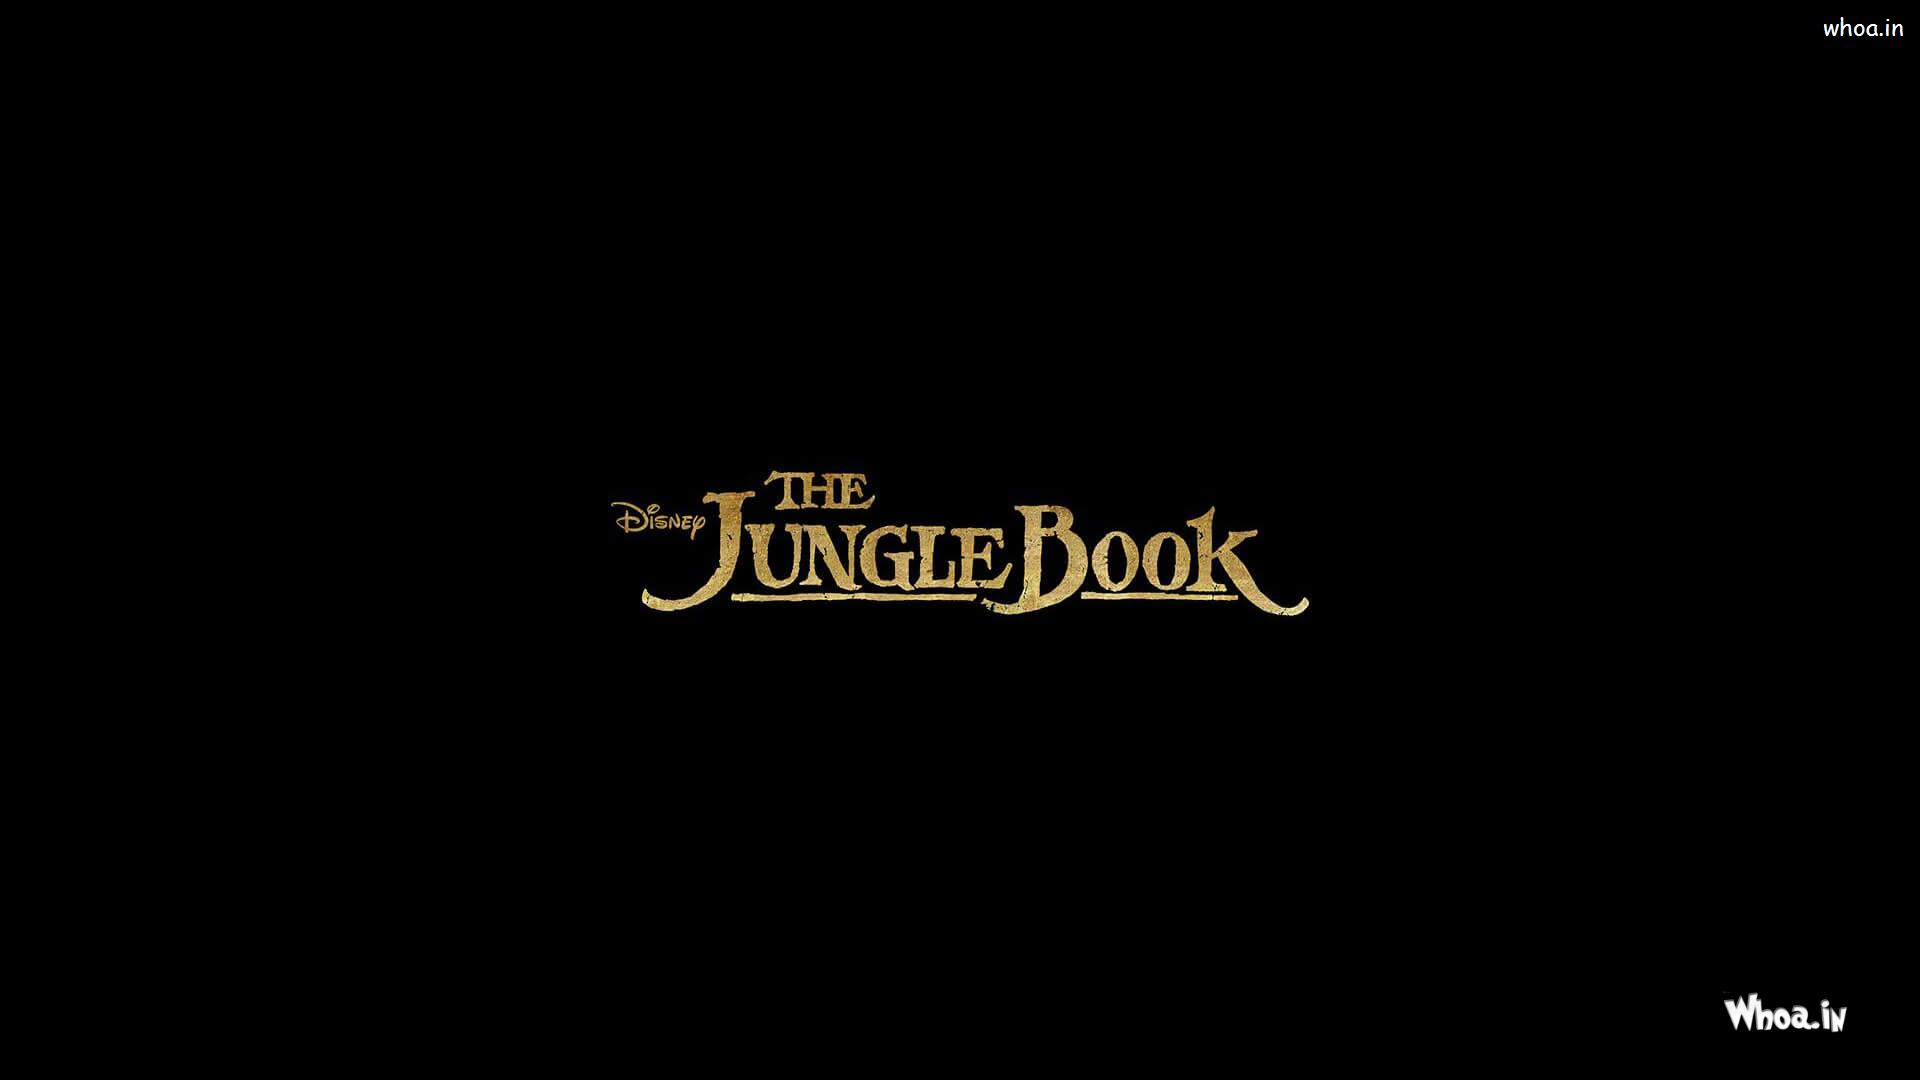 the jangle book hollywood movie poster with dark background